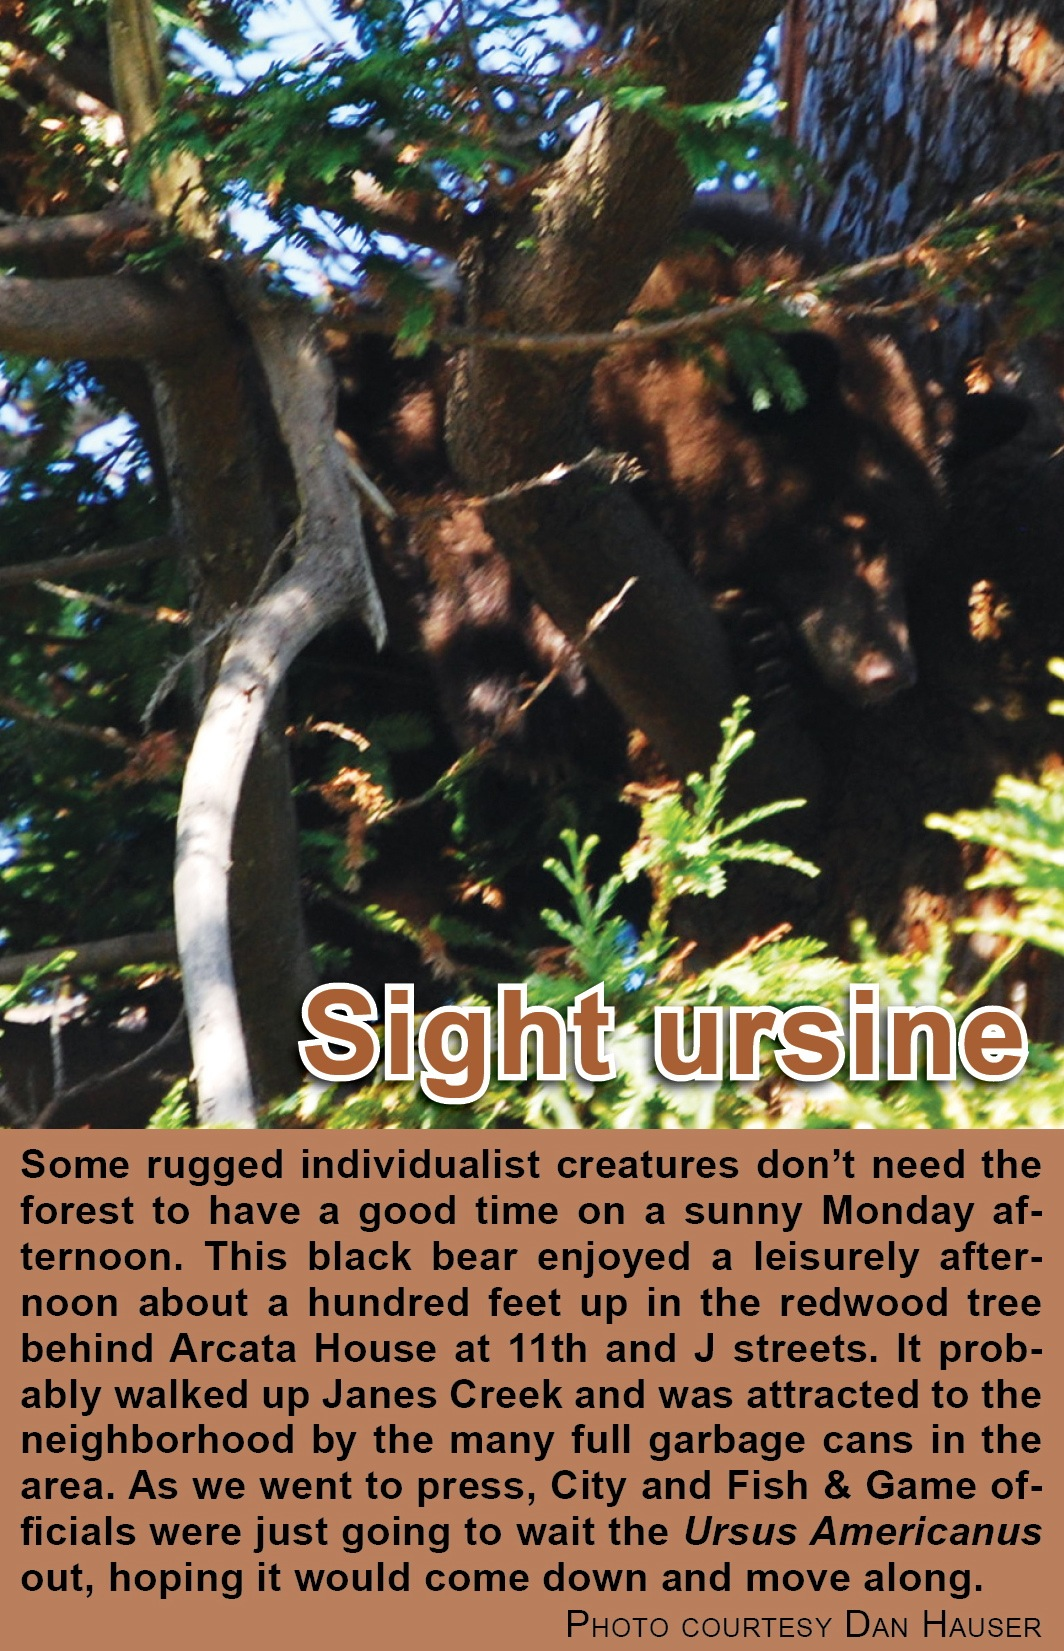 sight-ursine